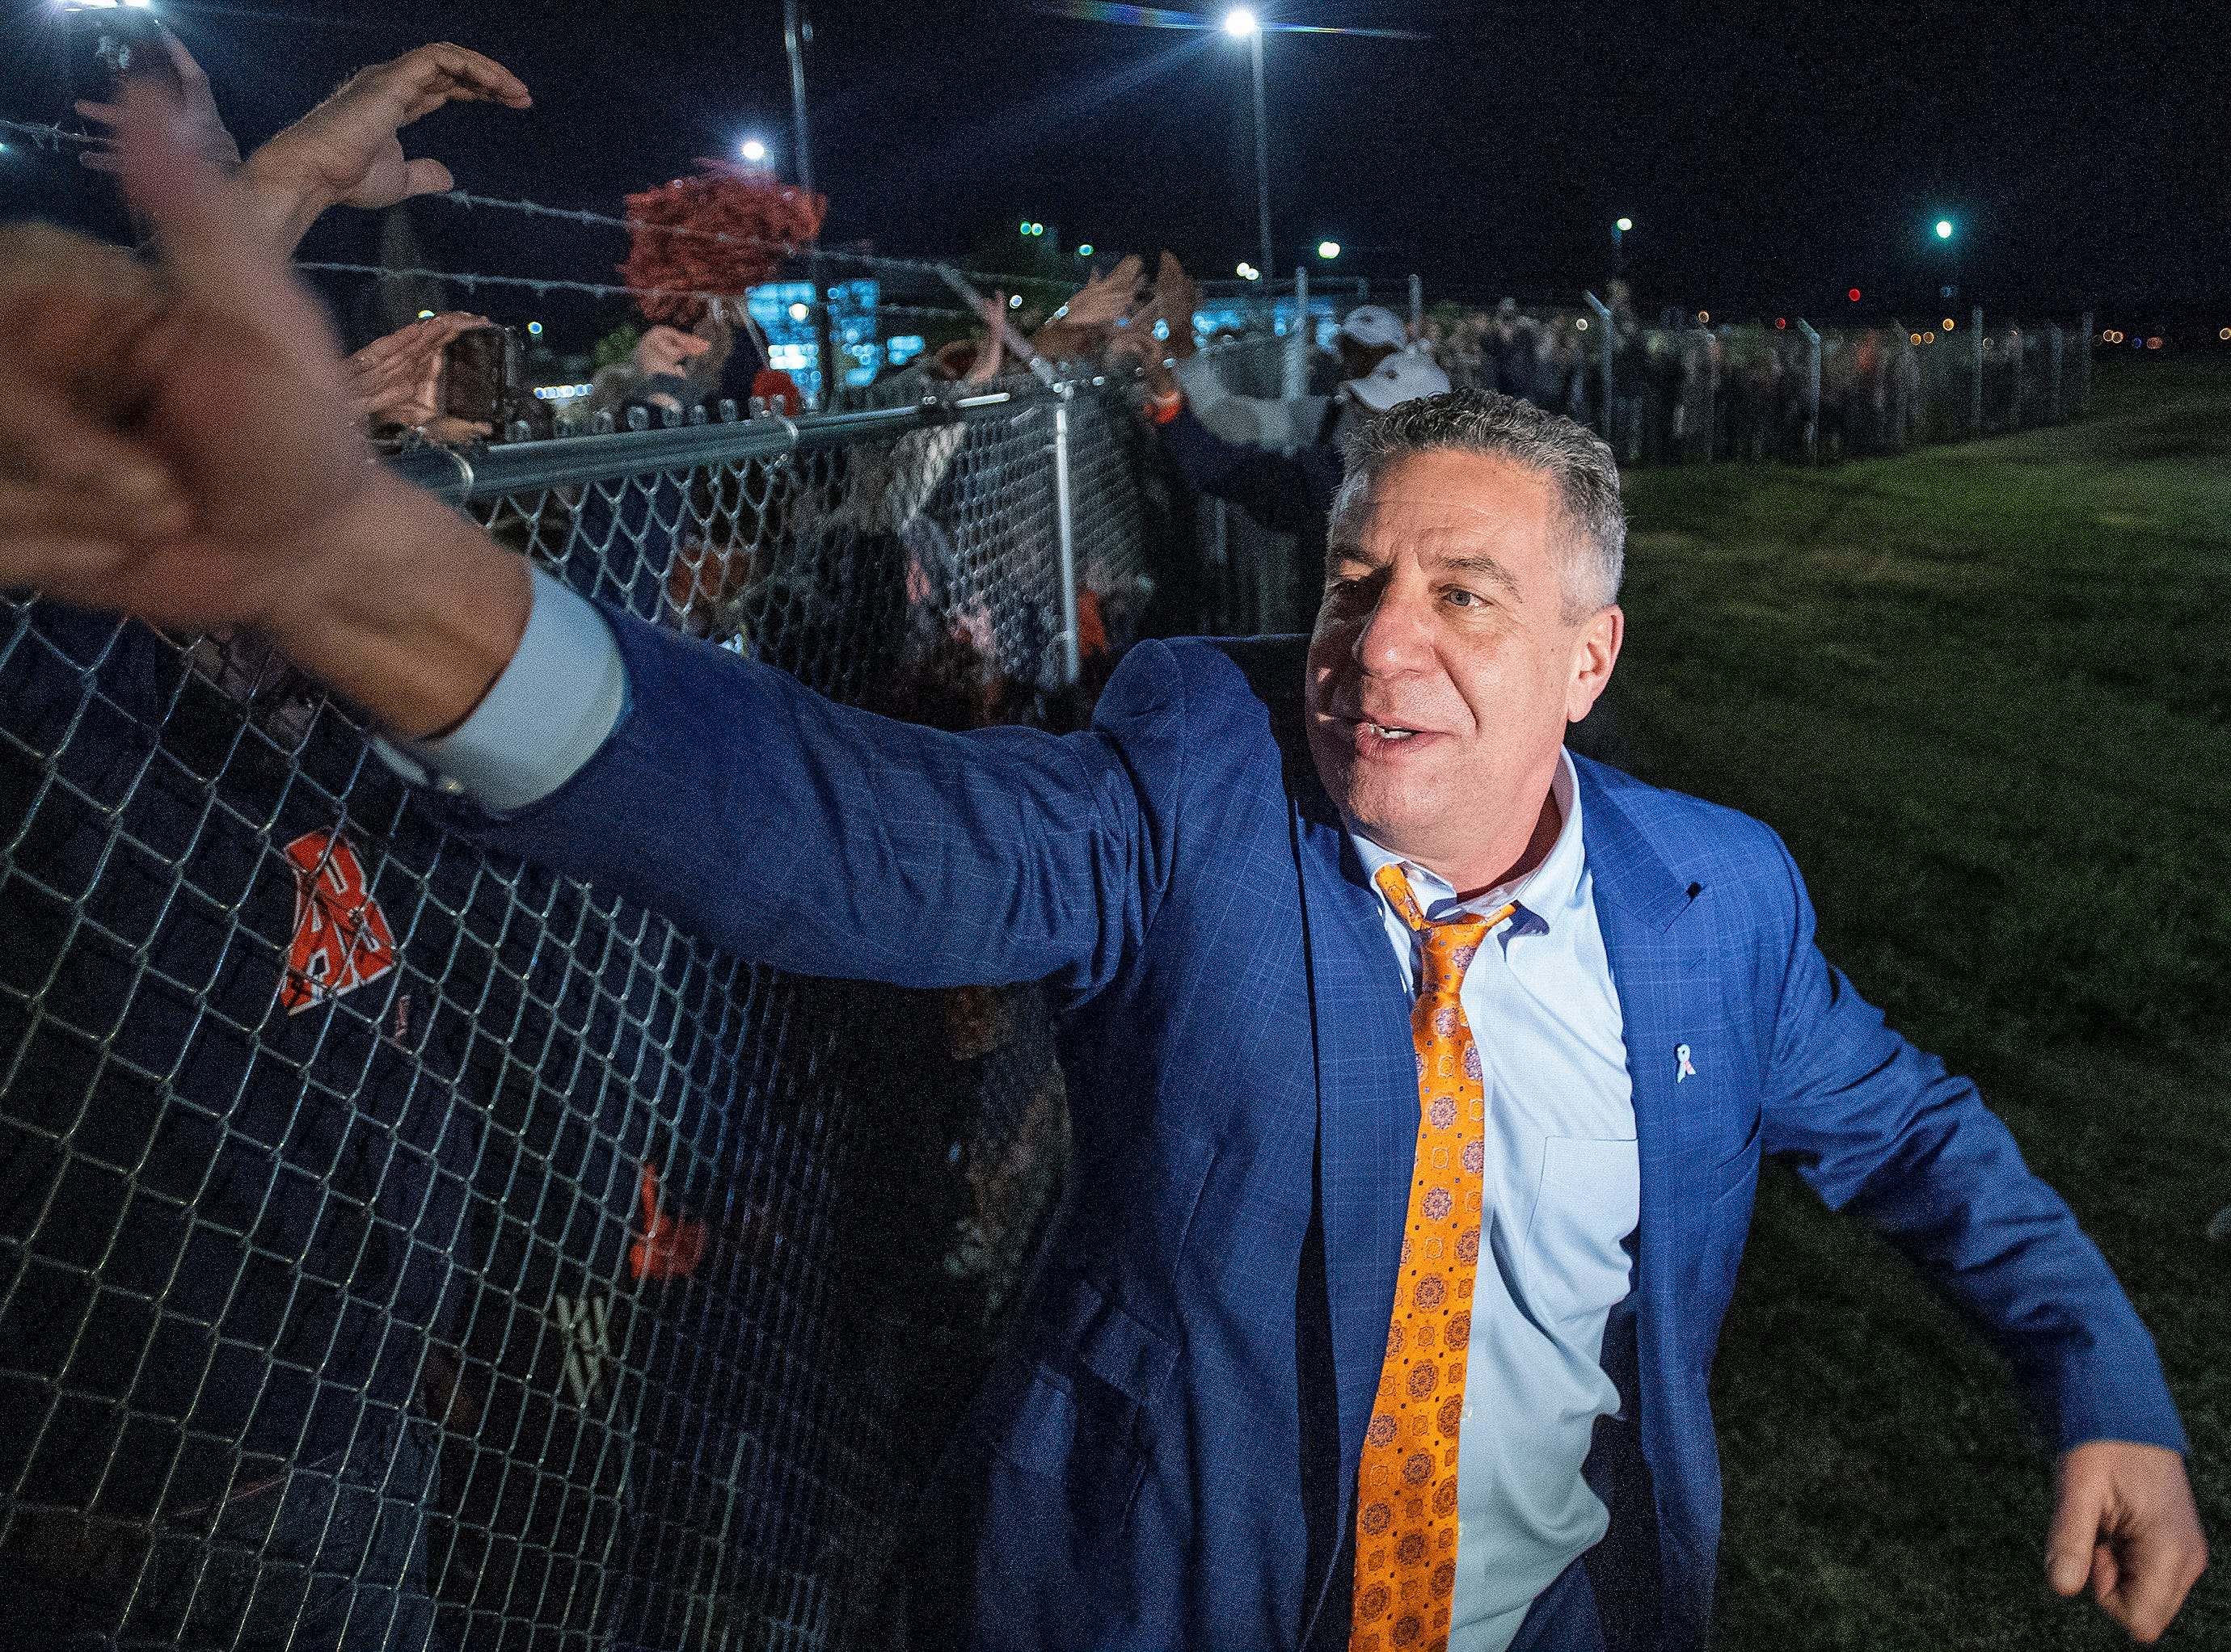 Head coach Bruce Pearl greets fans gathered along the fence line as the Auburn men's basketball team arrives at the Montgomery, Ala., airport on Sunday evening March 31, 2019 after defeating Kentucky in Kansas City to advance to the NCAA Basketball Final Four next weekend.